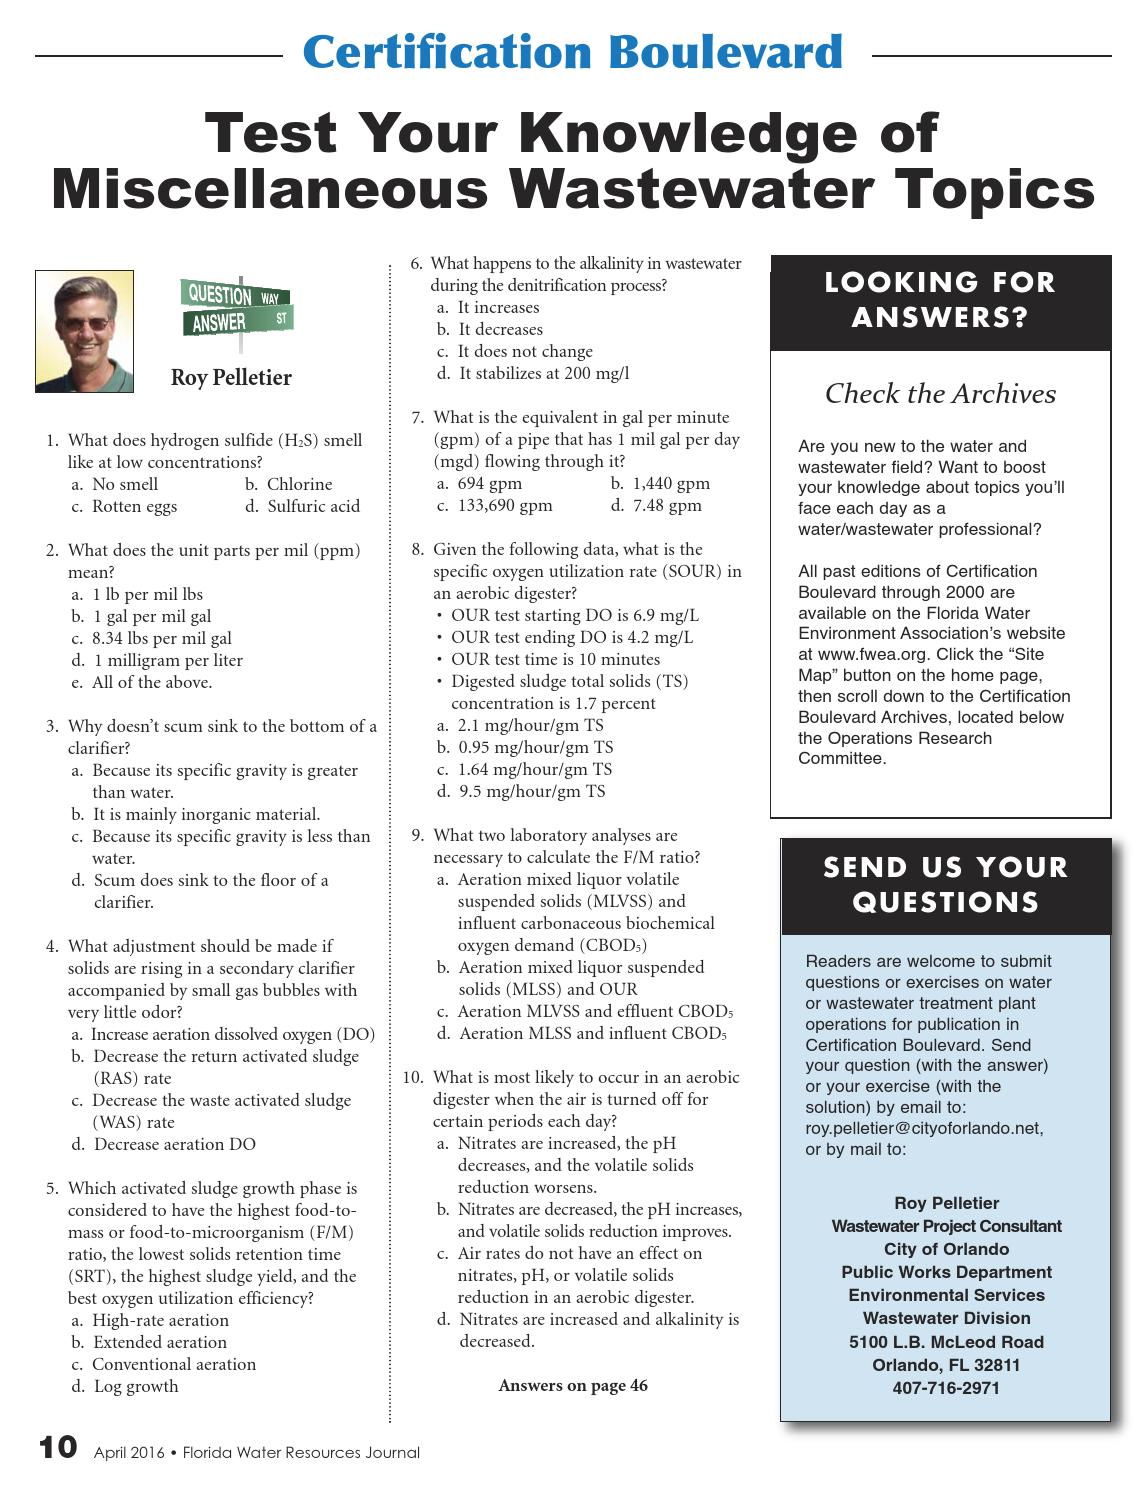 Florida Water Resources Journal - April 2016 by Florida